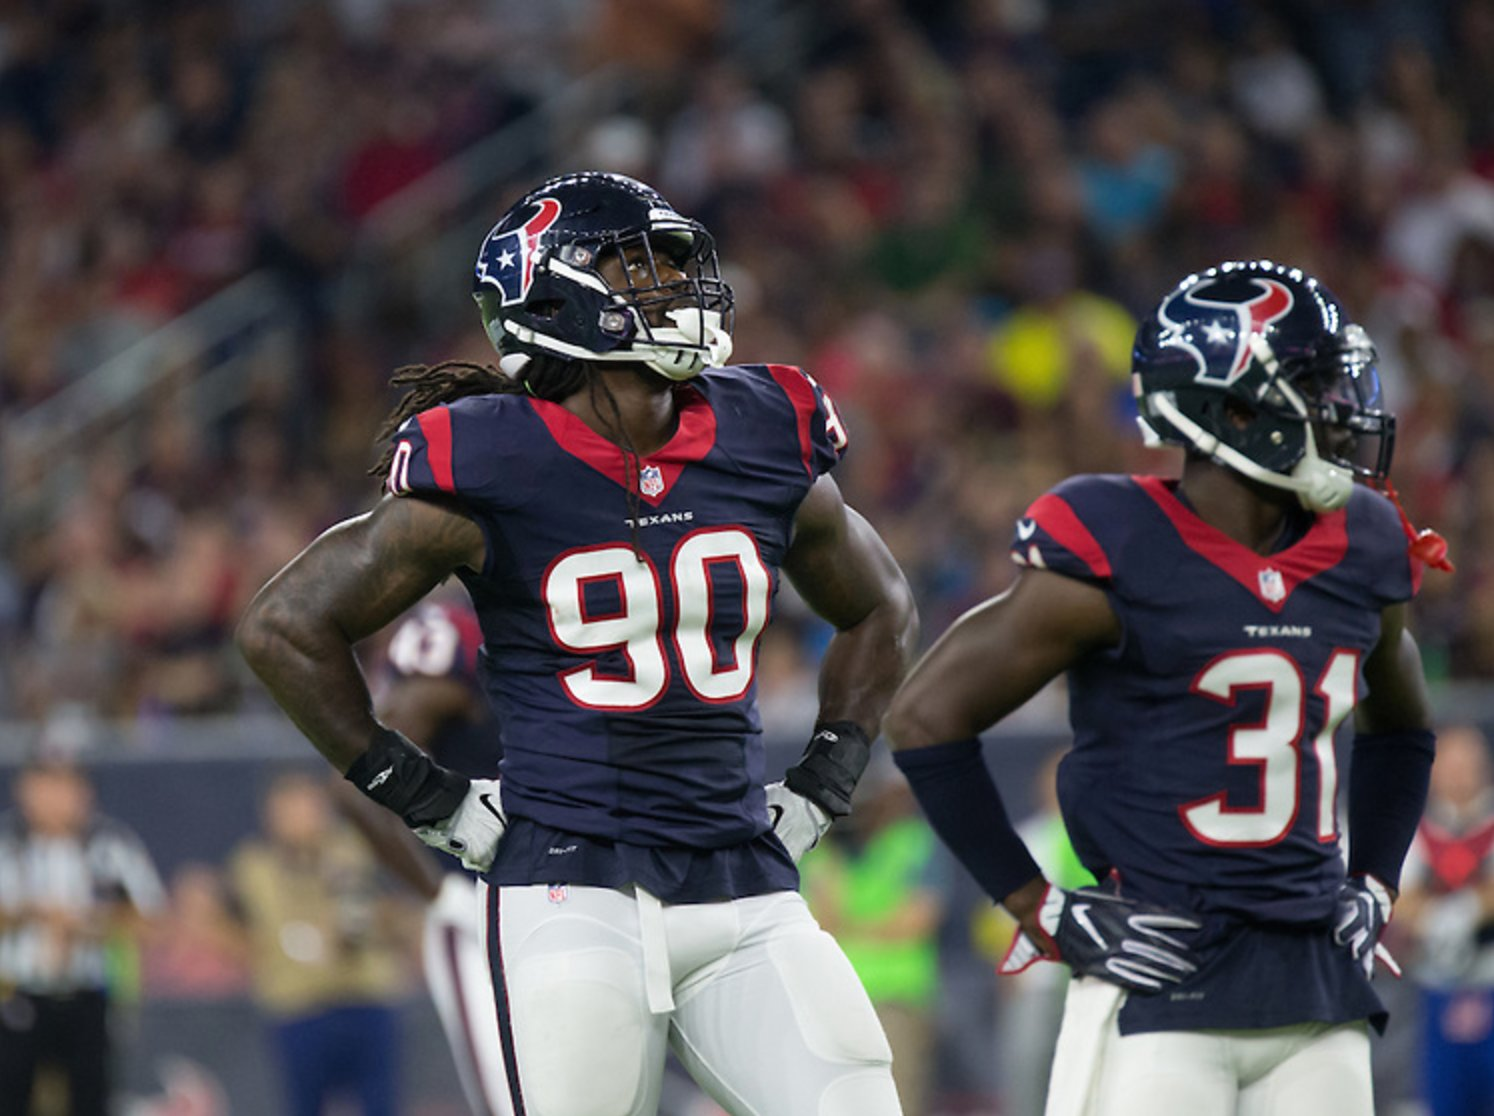 Texas linebacker Jadeveon Clowney was given the non-exclusive franchise tag by the Texans on Monday, meaning Houston would get tow first round picks if the former first-round pick signed elsewhere.